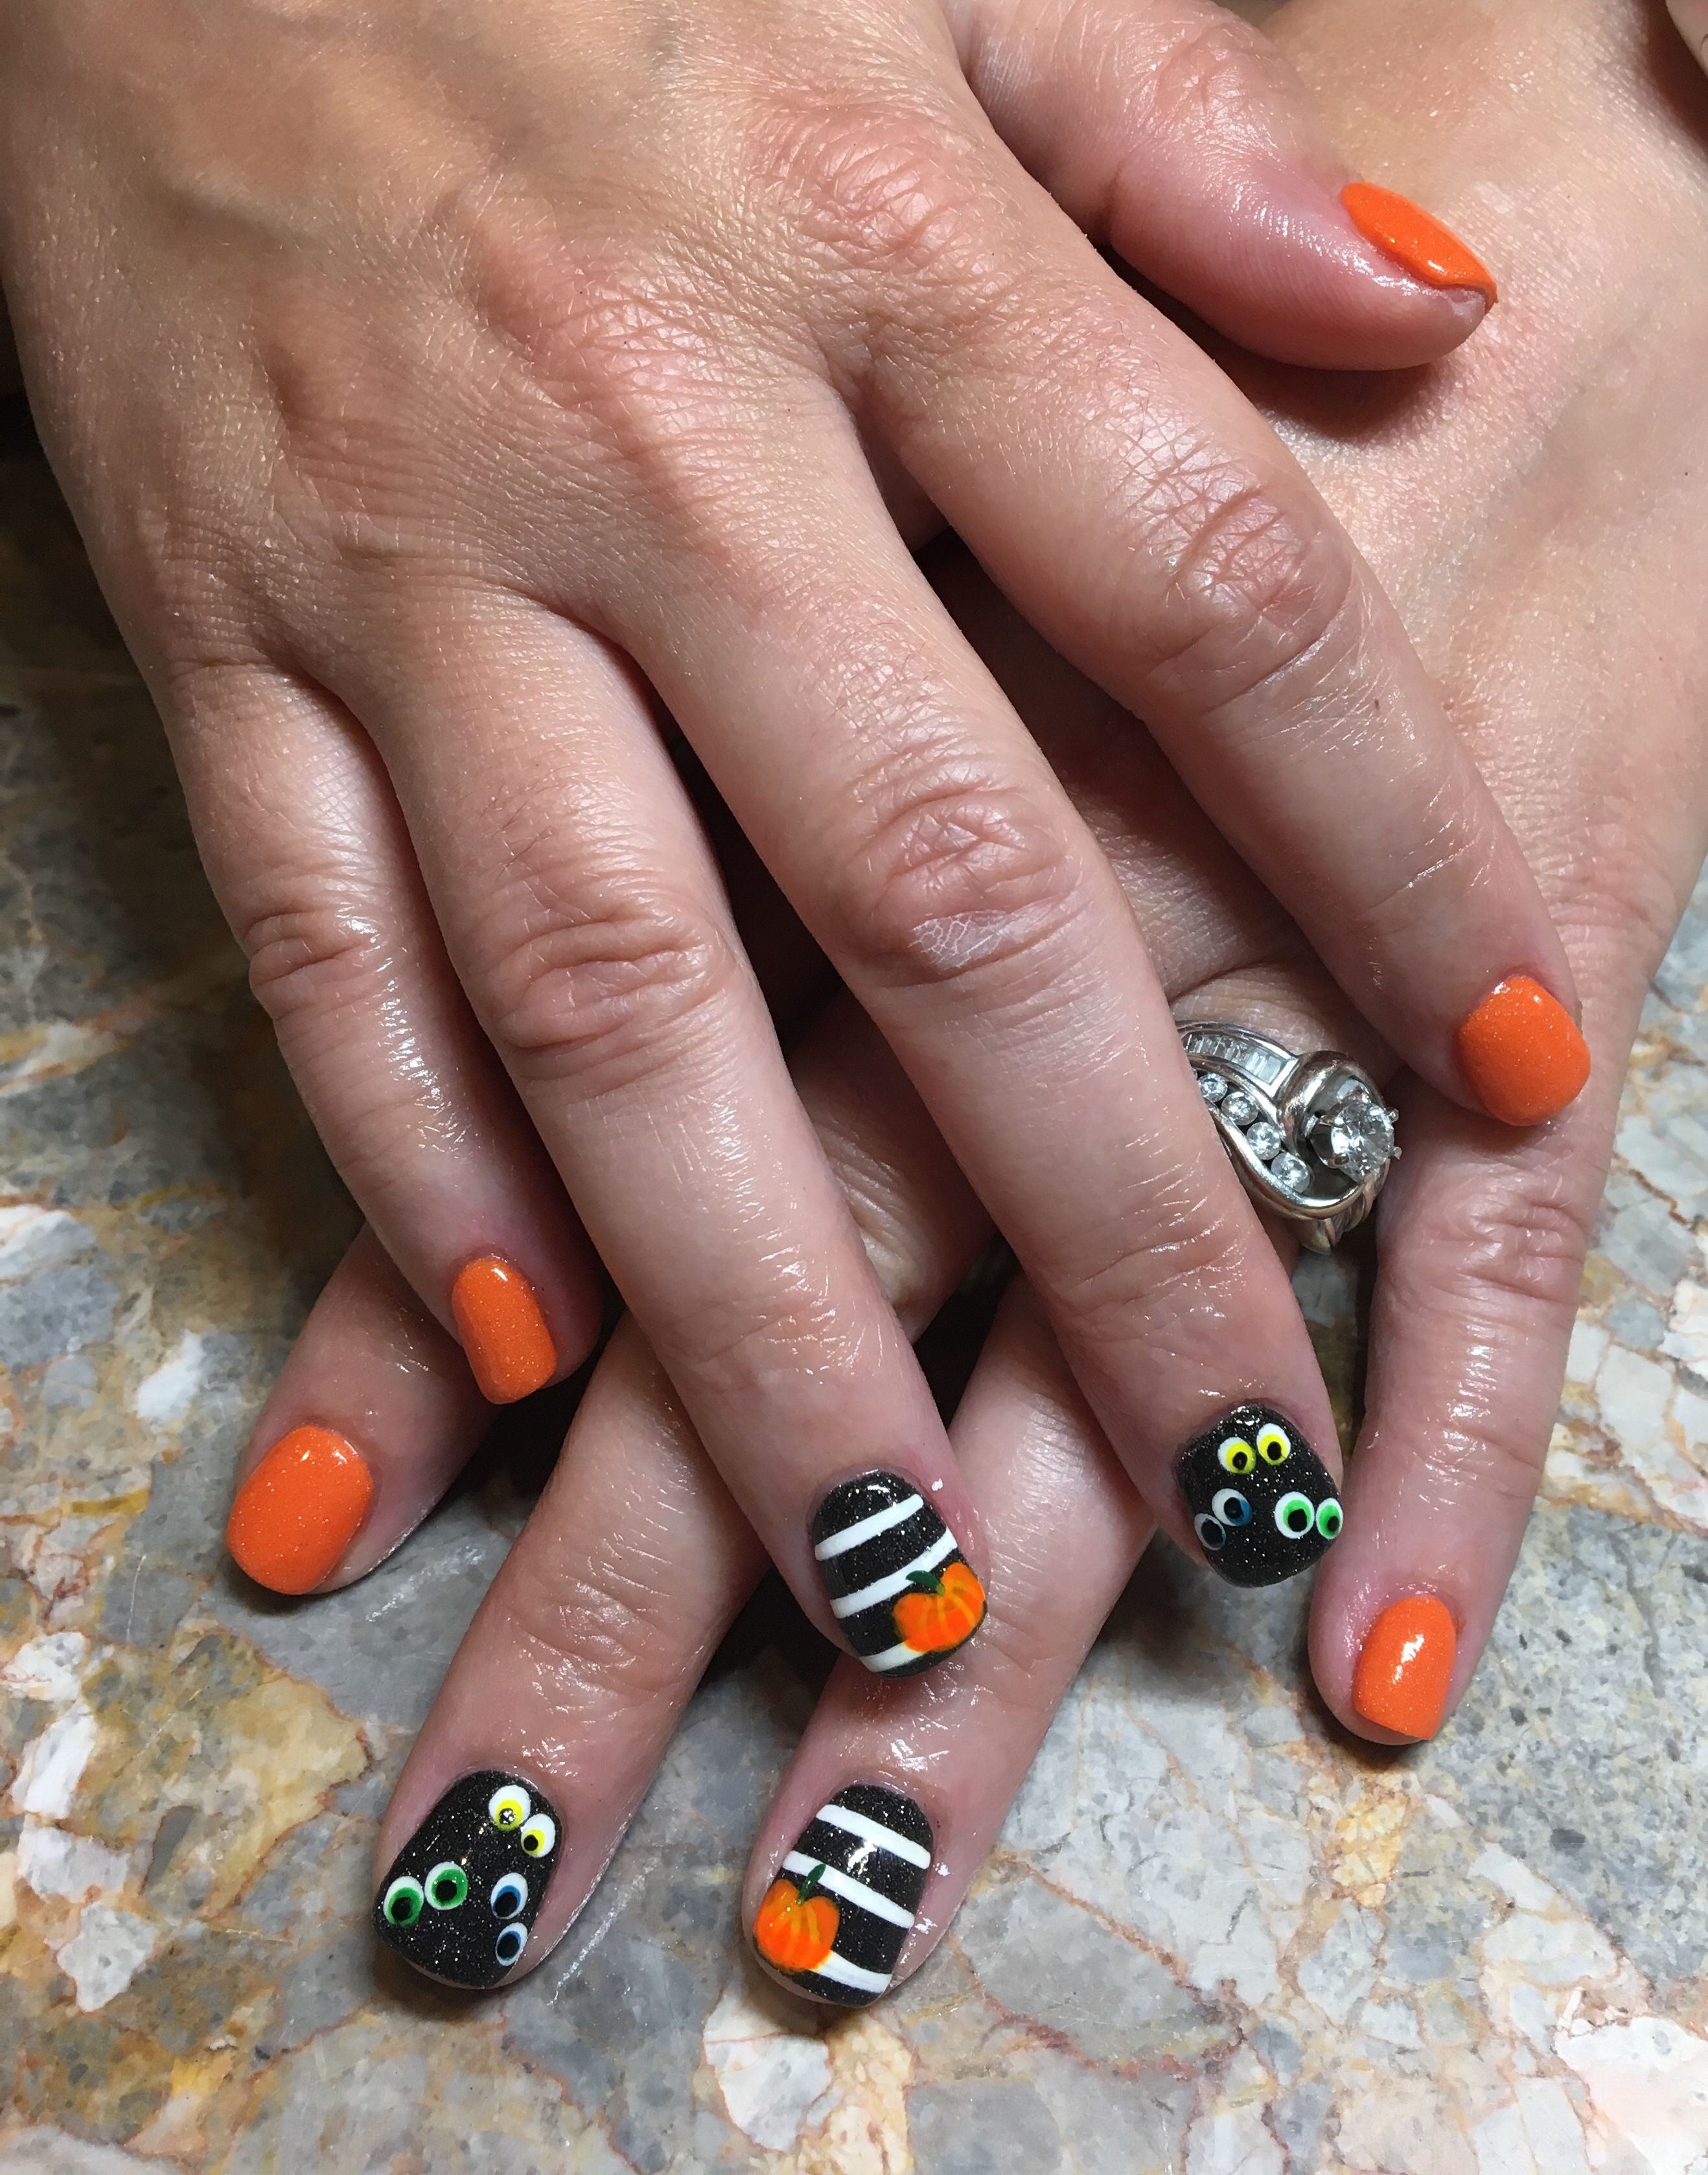 Pin By Genevieve Russell On Pretty Girly Nails Nails Nail Polish Addict Halloween Nails